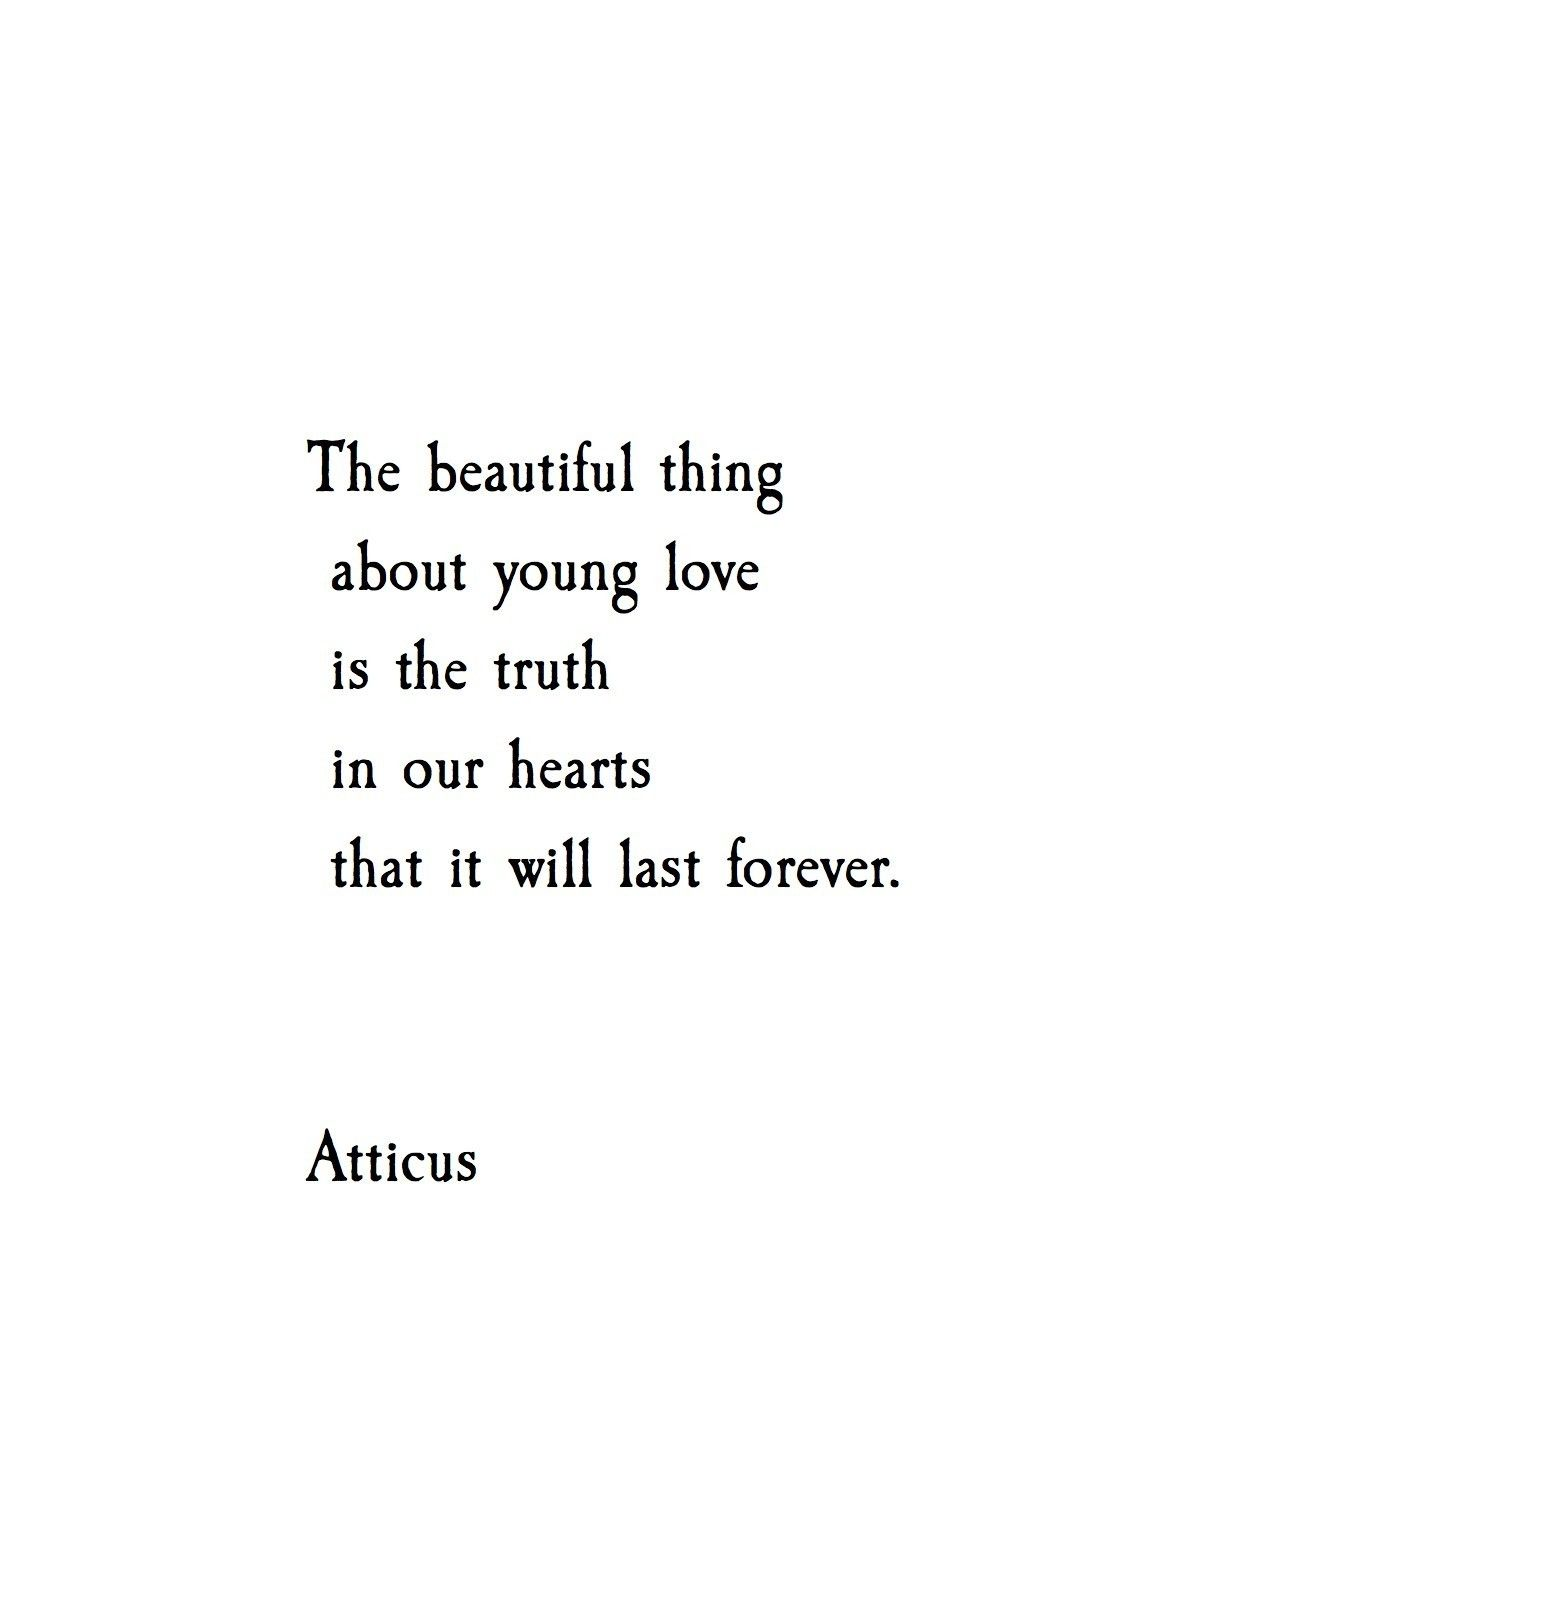 Quotes About Young Love: 'Young Hearts' @atticuspoetry #atticuspoetry